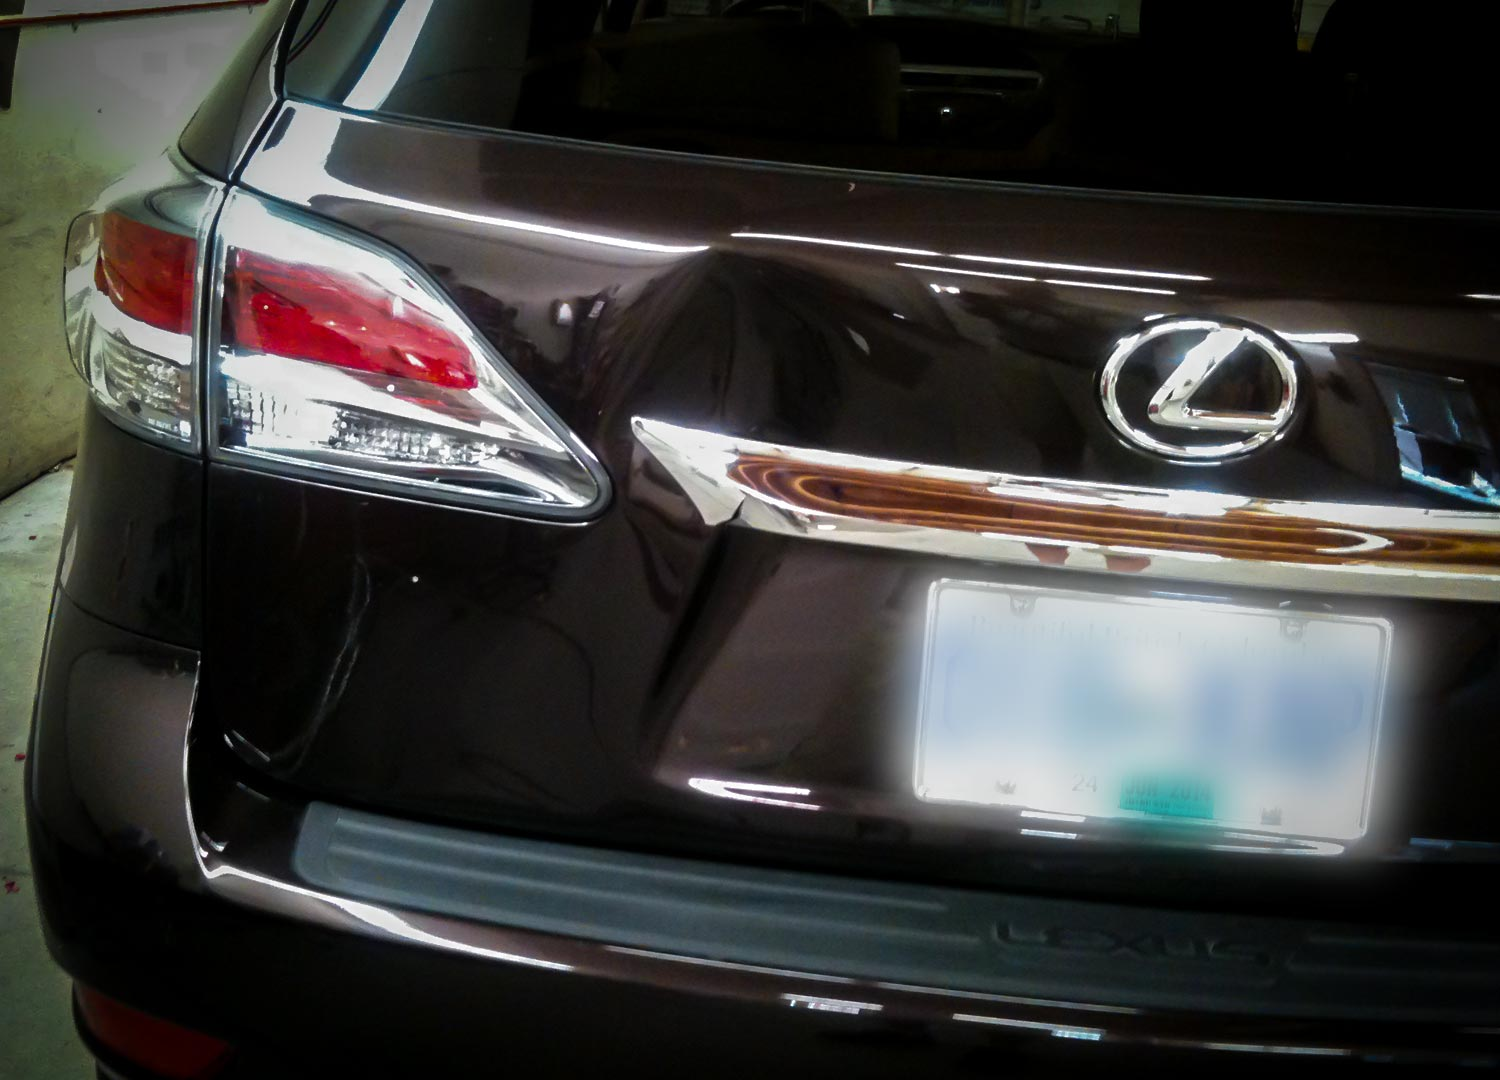 2012 Lexus Rx350 With Dent In Trunk Lid Dentique